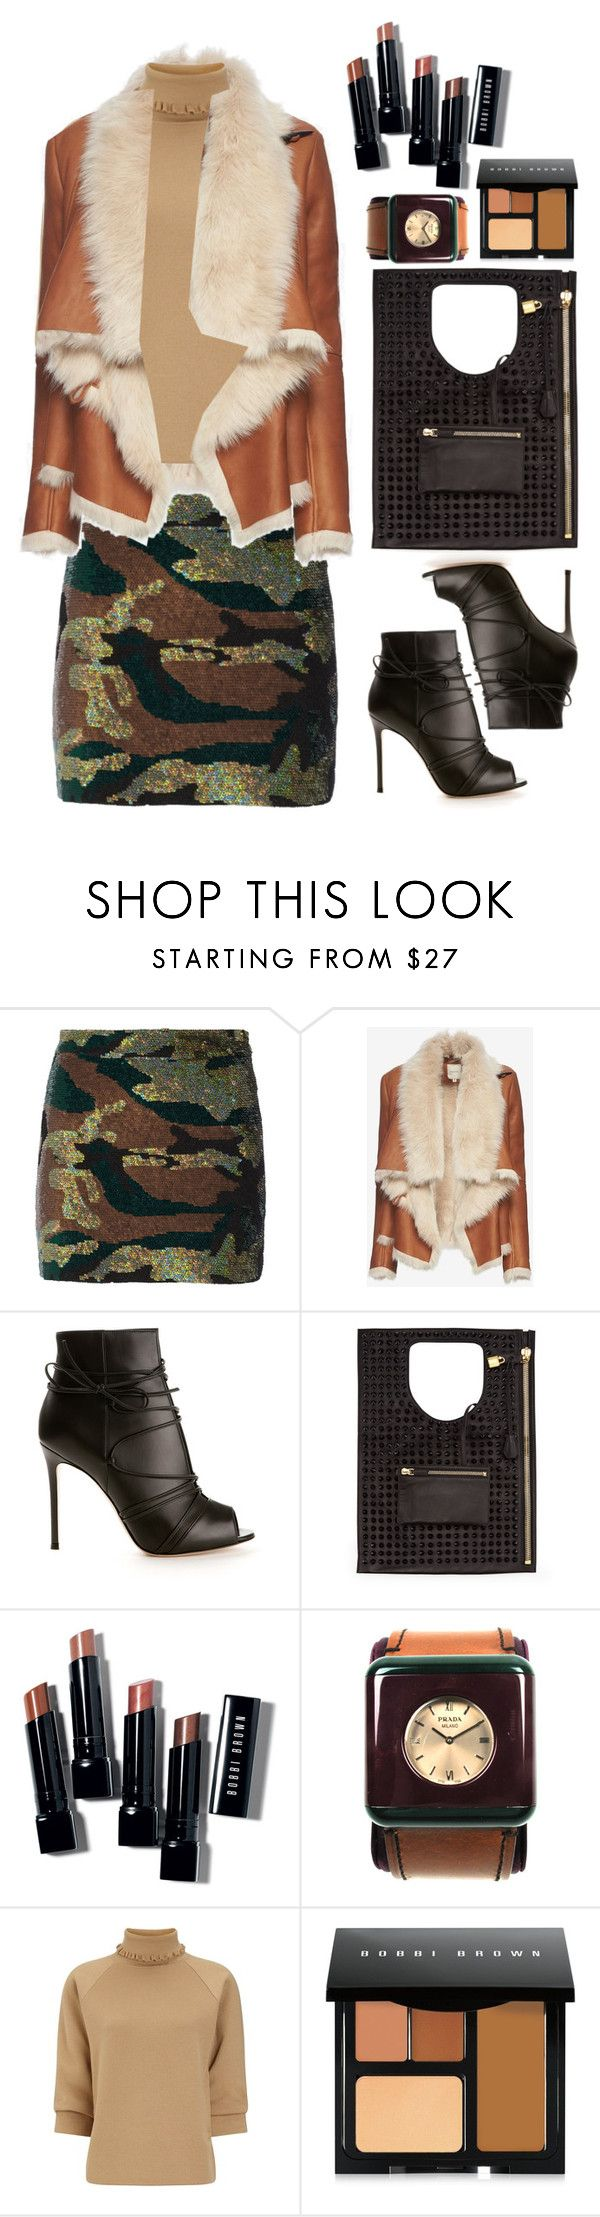 """Ashish Camouflage-sequined silk-georgette mini skirt"" by thestyleartisan ❤ liked on Polyvore featuring Ashish, Mason by Michelle Mason, Gianvito Rossi, Bobbi Brown Cosmetics, Prada and J.W. Anderson"